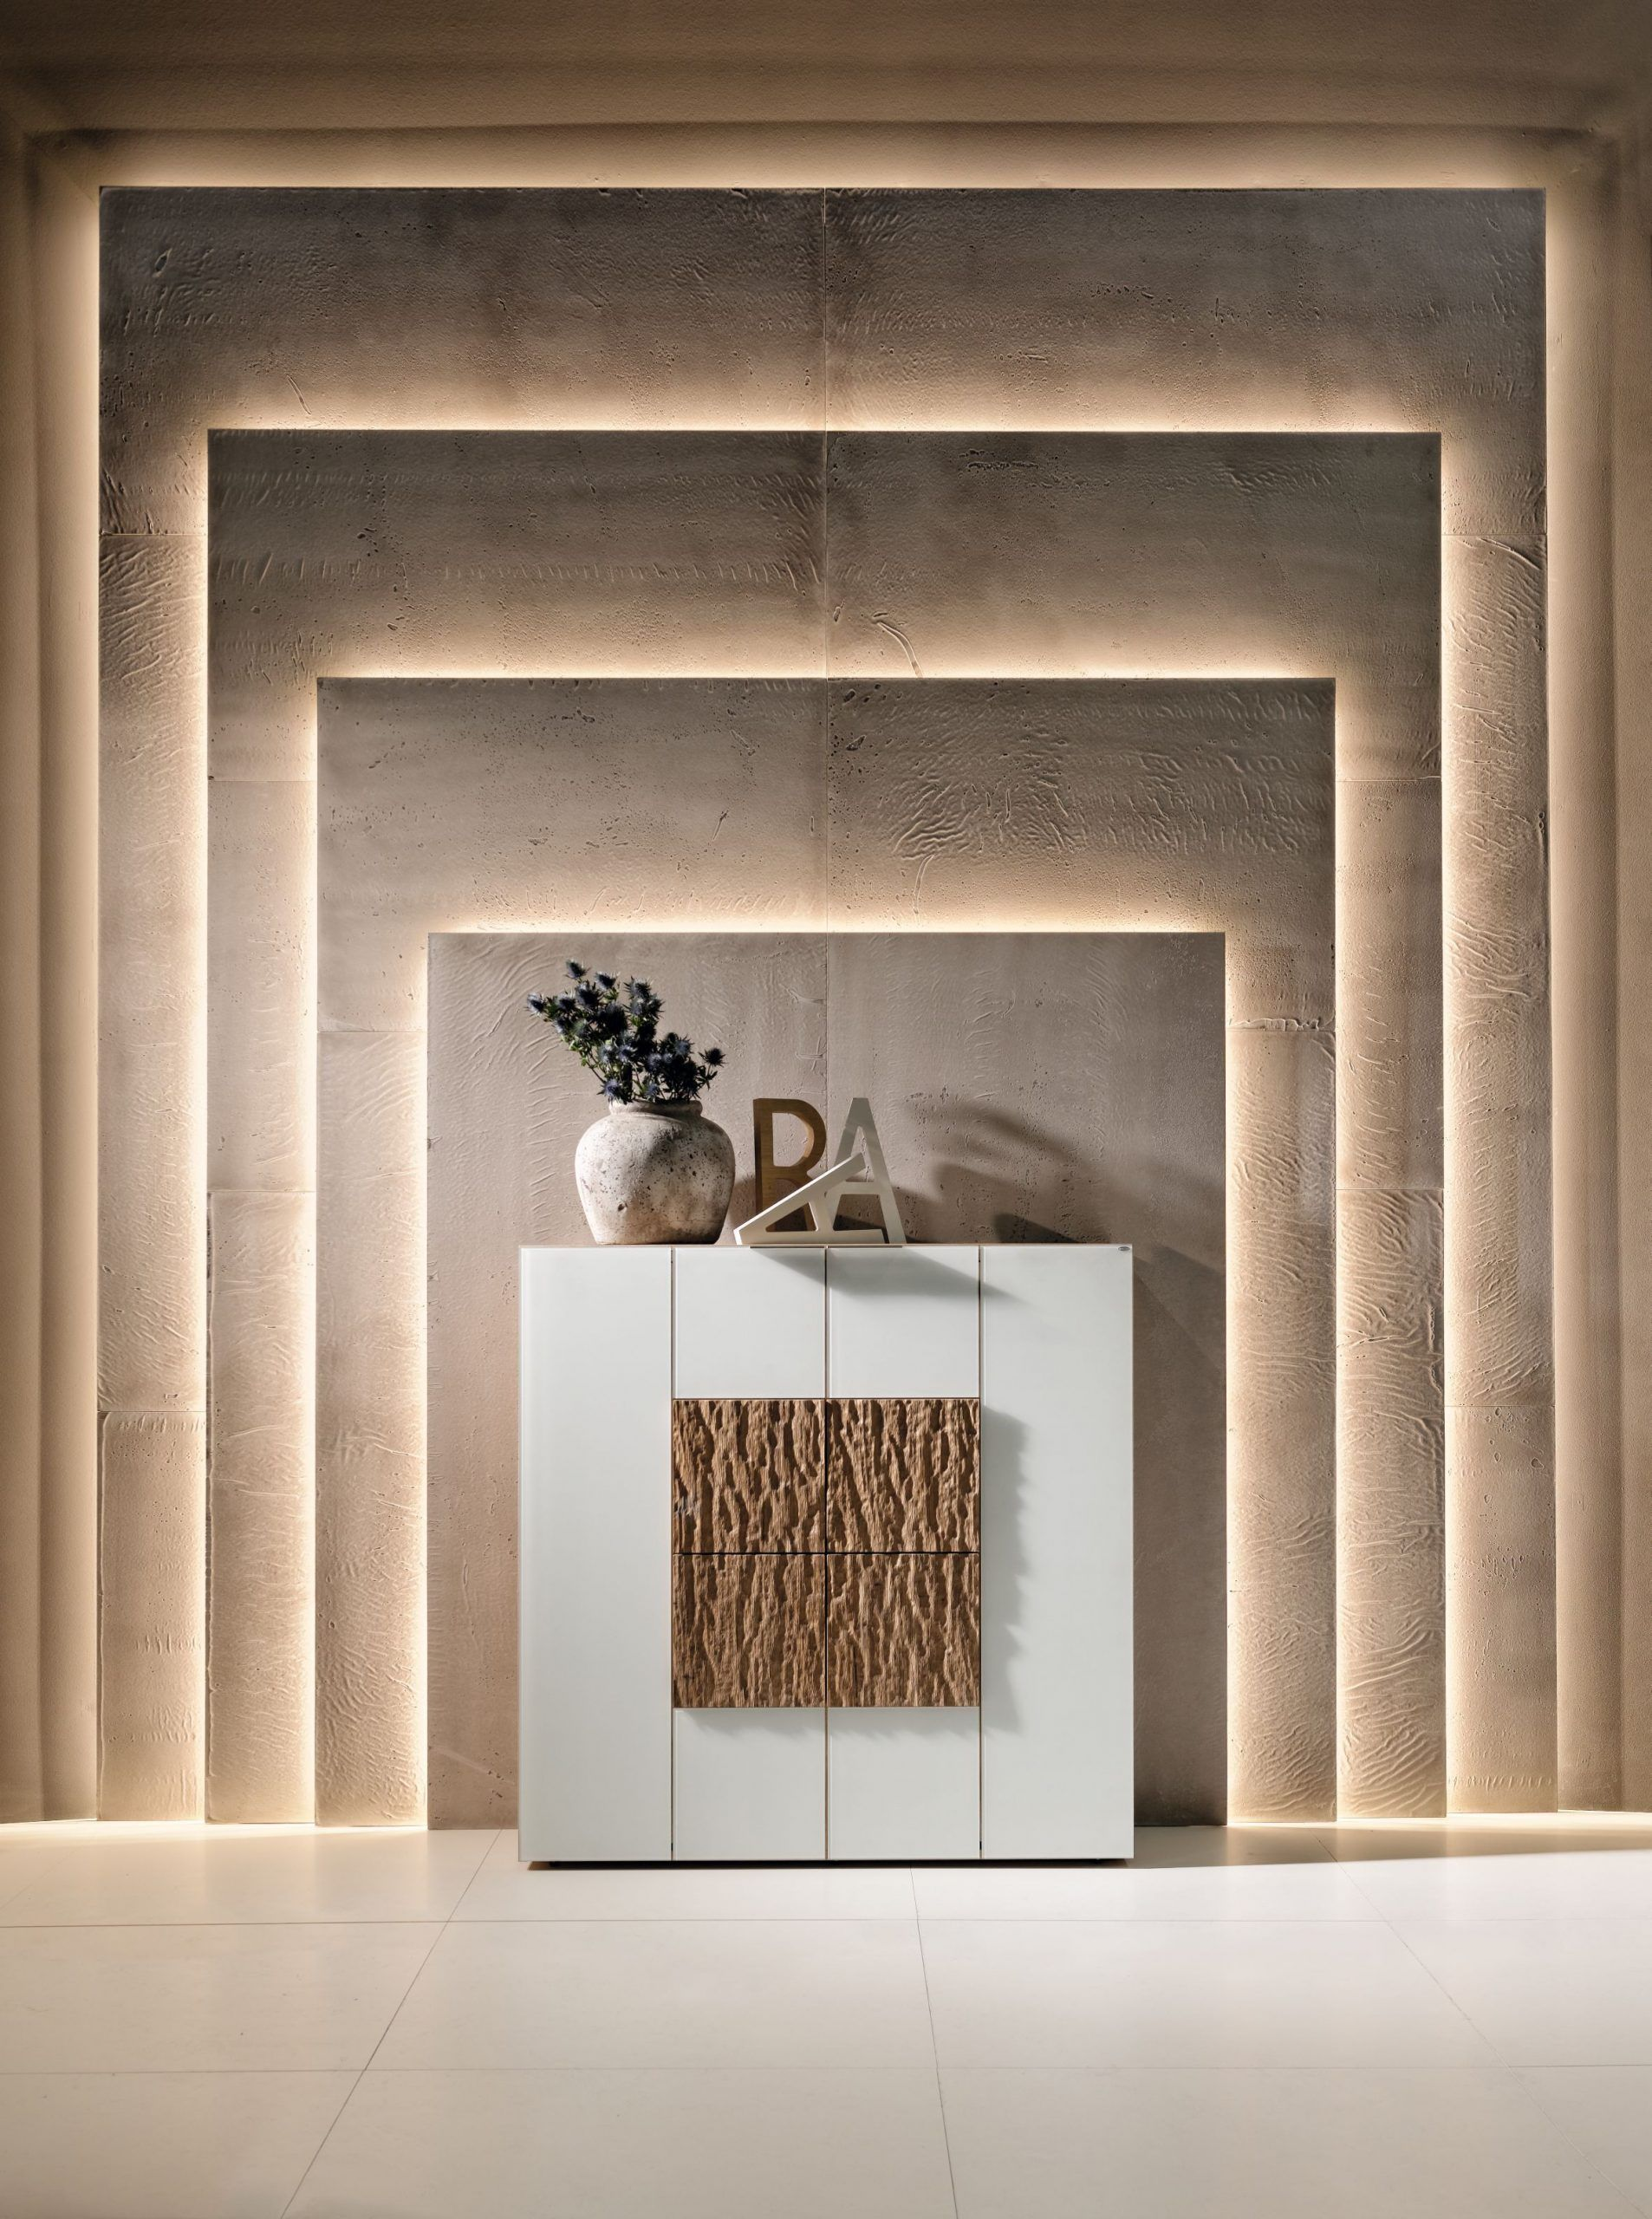 Voglauer V Alpin Tisch Stuhl Superhairmodels Com Dekor Interior Wall Design Wall Design Feature Wall Design